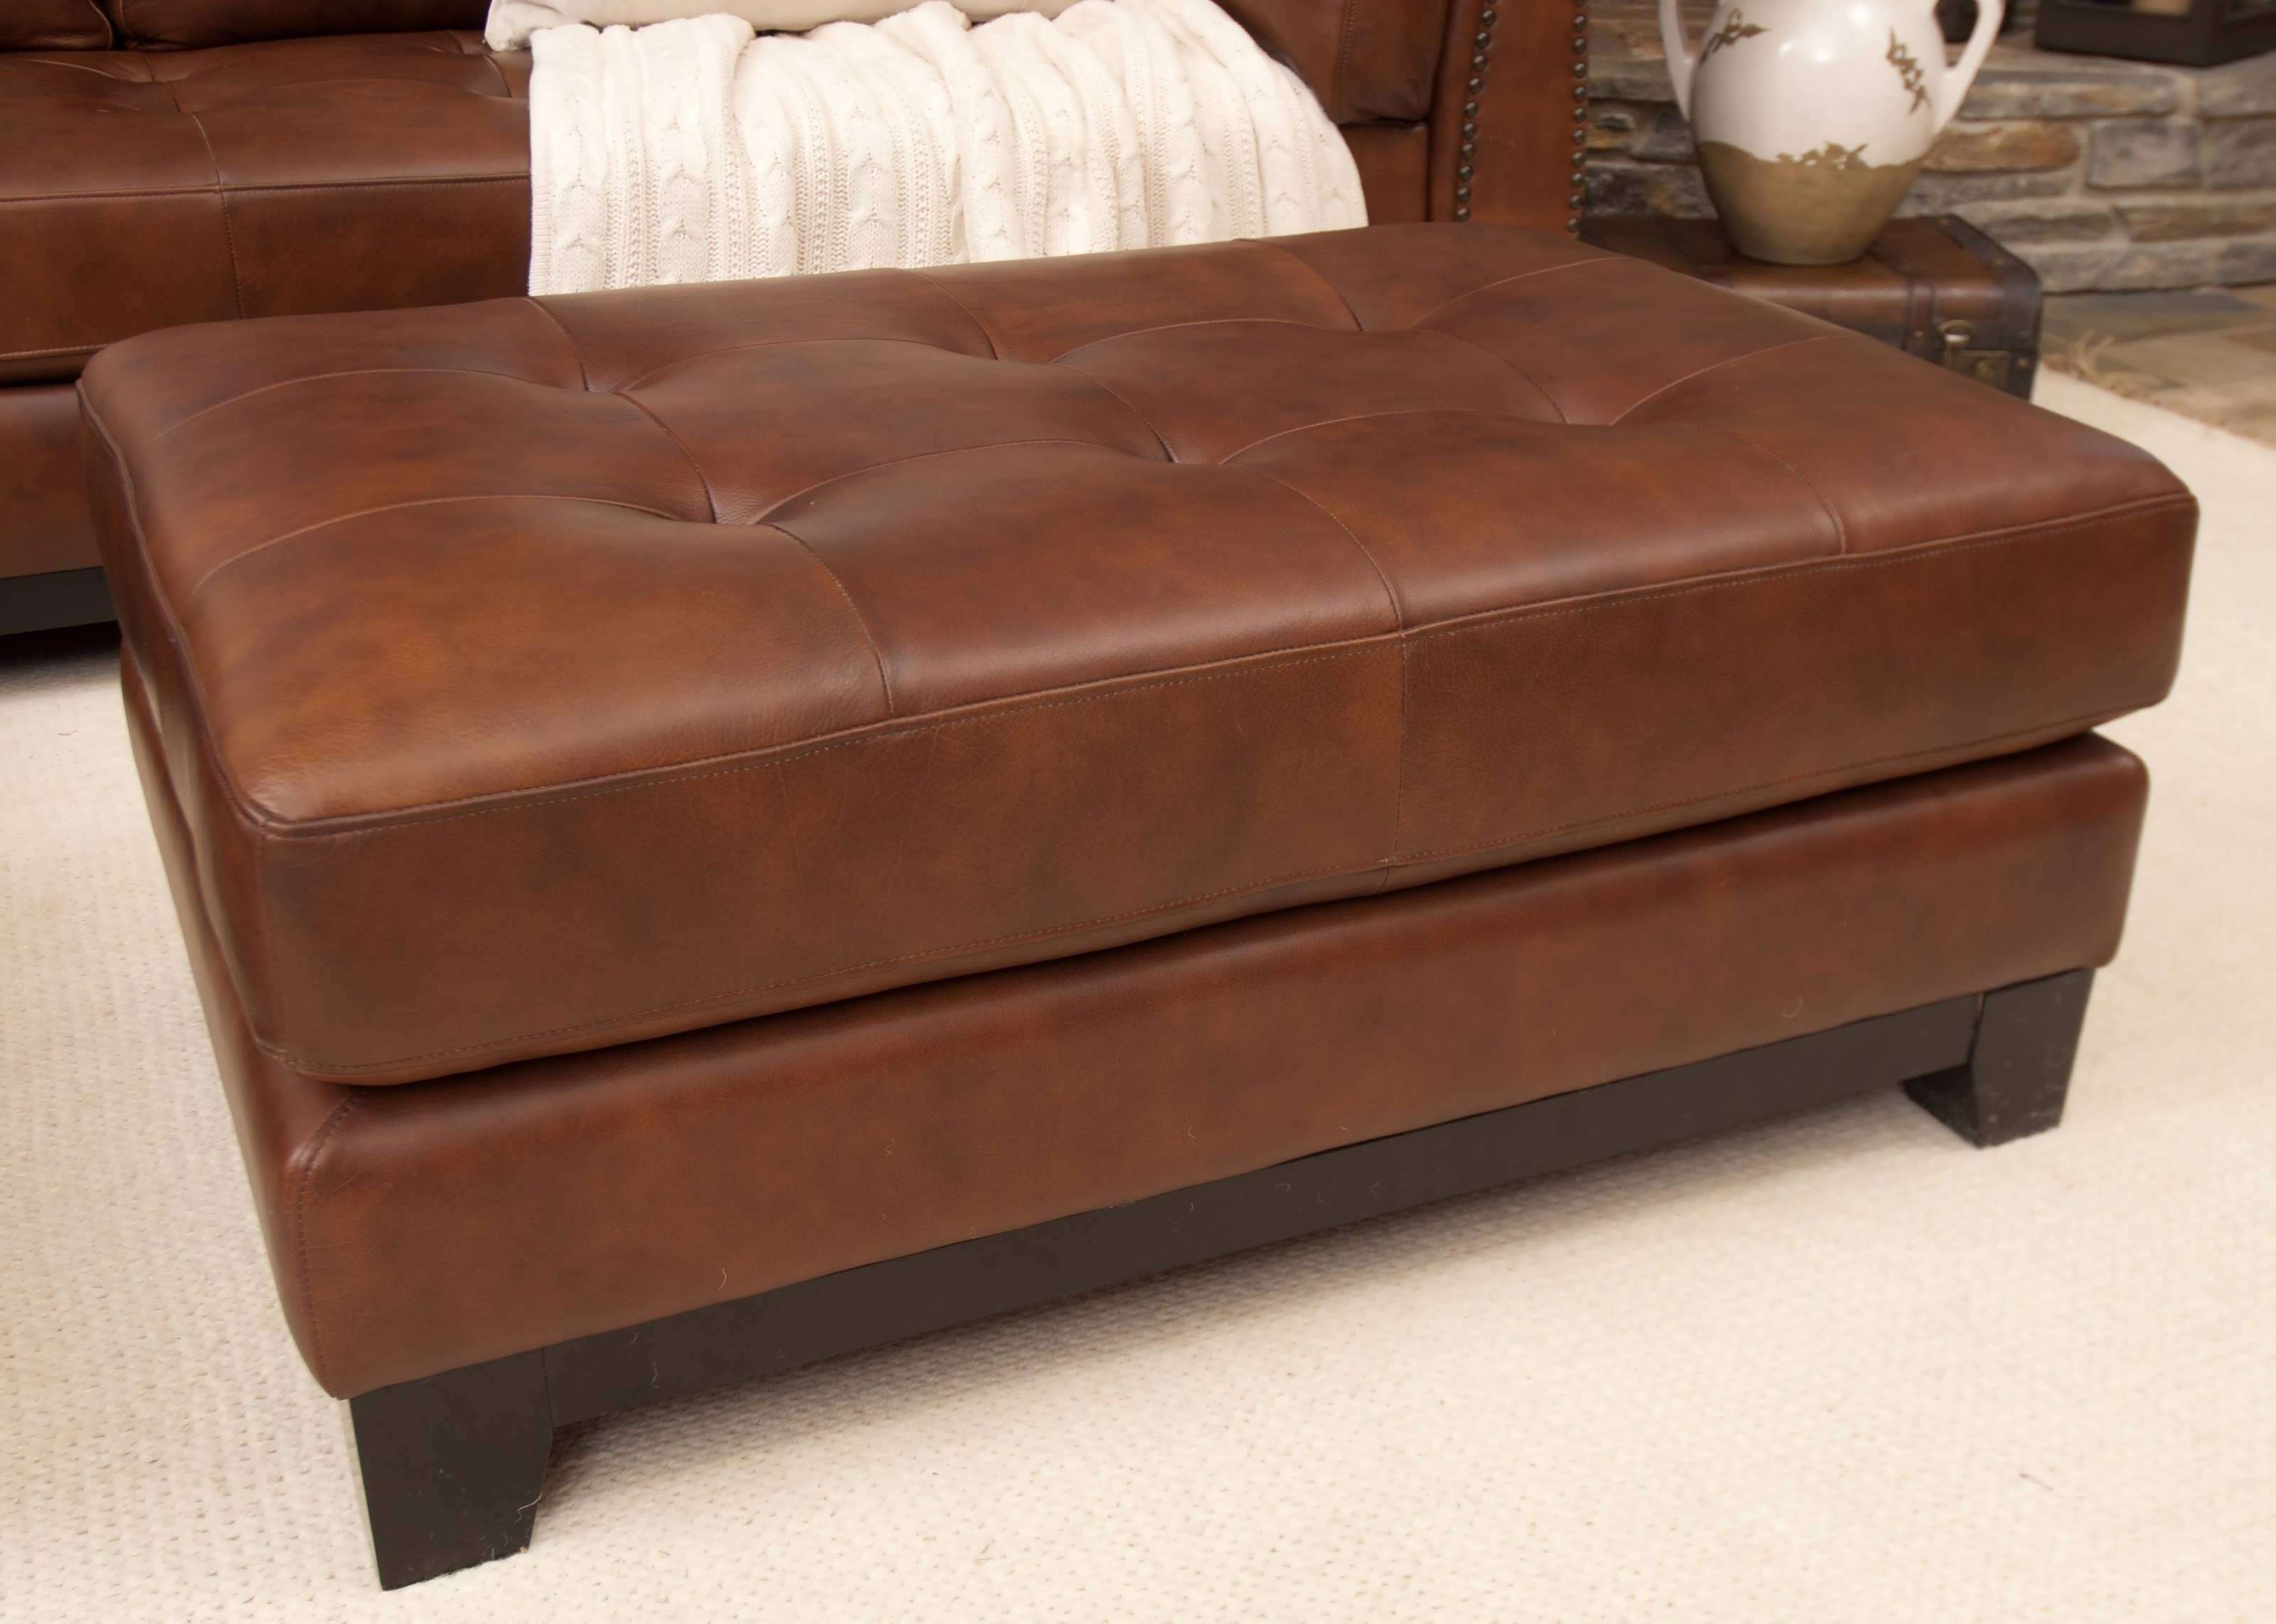 Favorite Leopard Ottoman Coffee Tables Within Amazing Leopard Ottoman Coffee Table – Mediasupload (View 18 of 20)